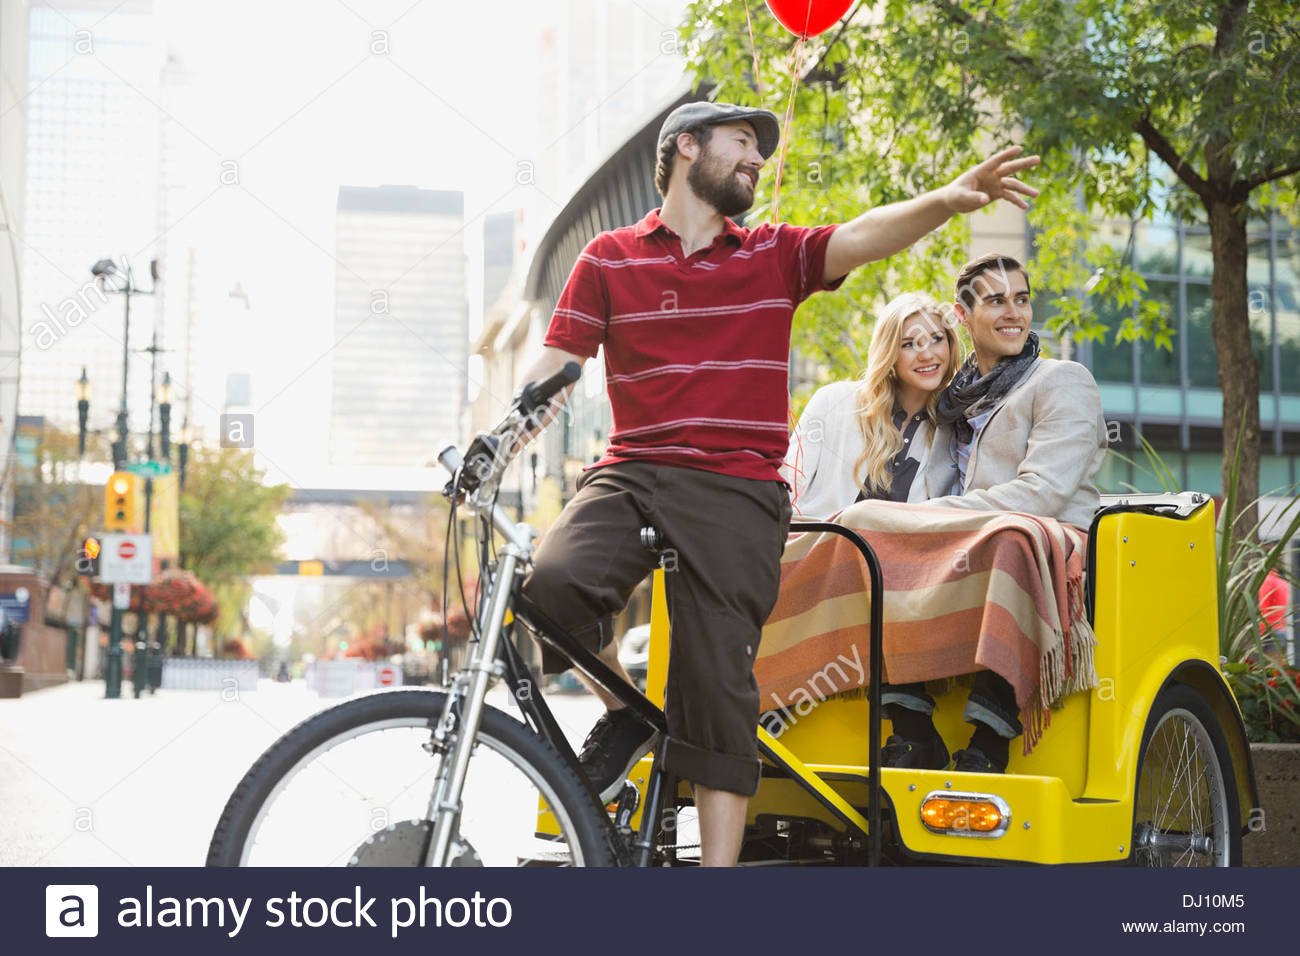 Rickshaw driver pointing out city landmarks to couple - Stock Image